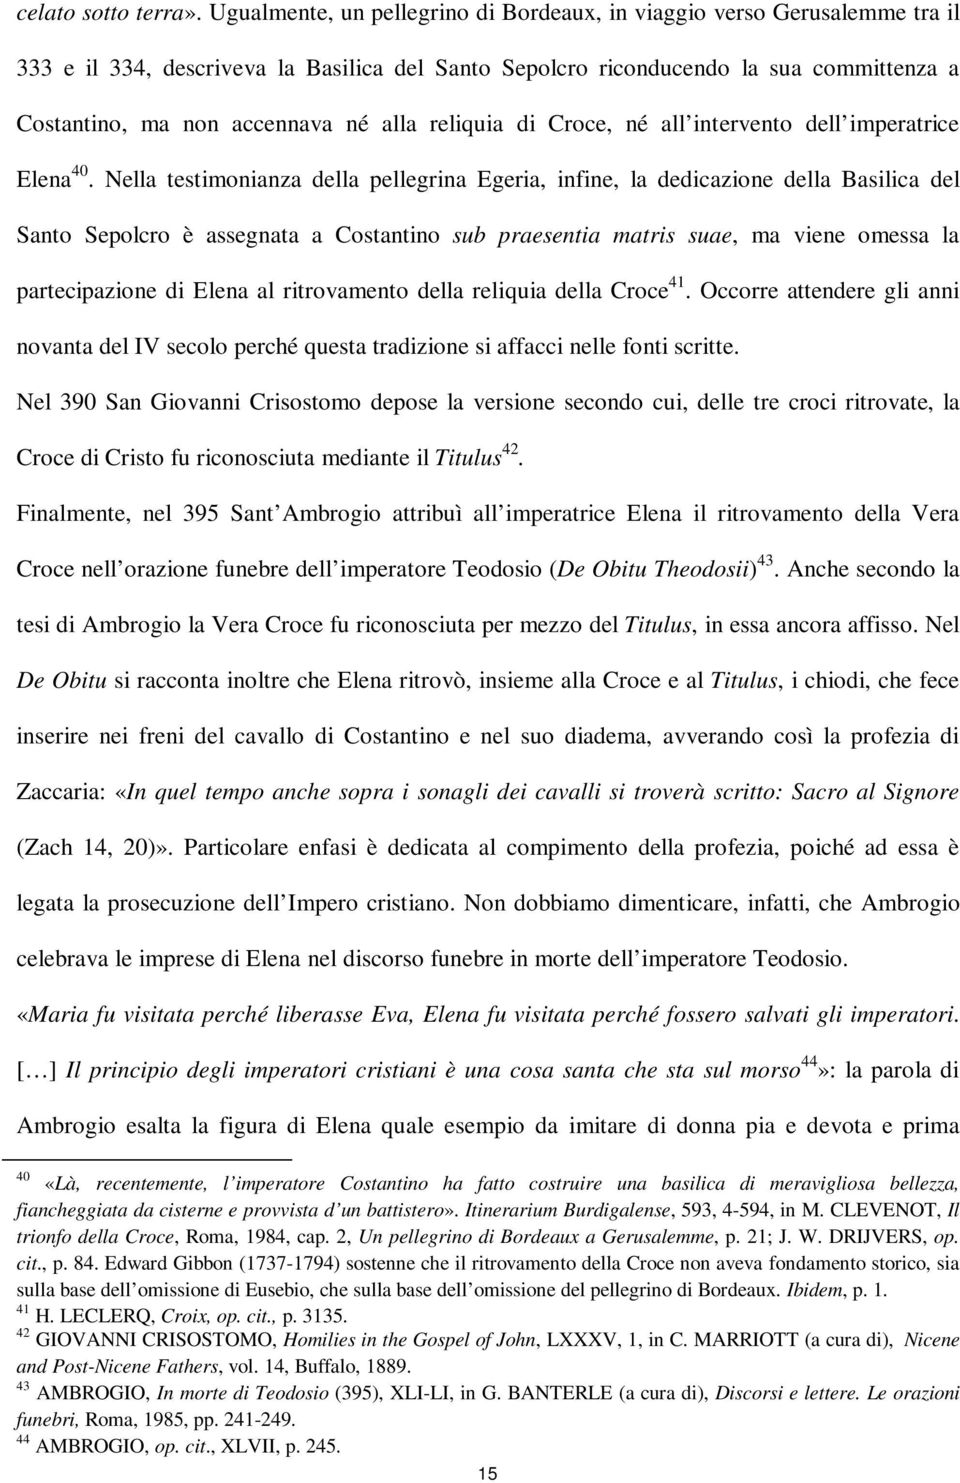 alla reliquia di Croce, né all intervento dell imperatrice Elena 40.